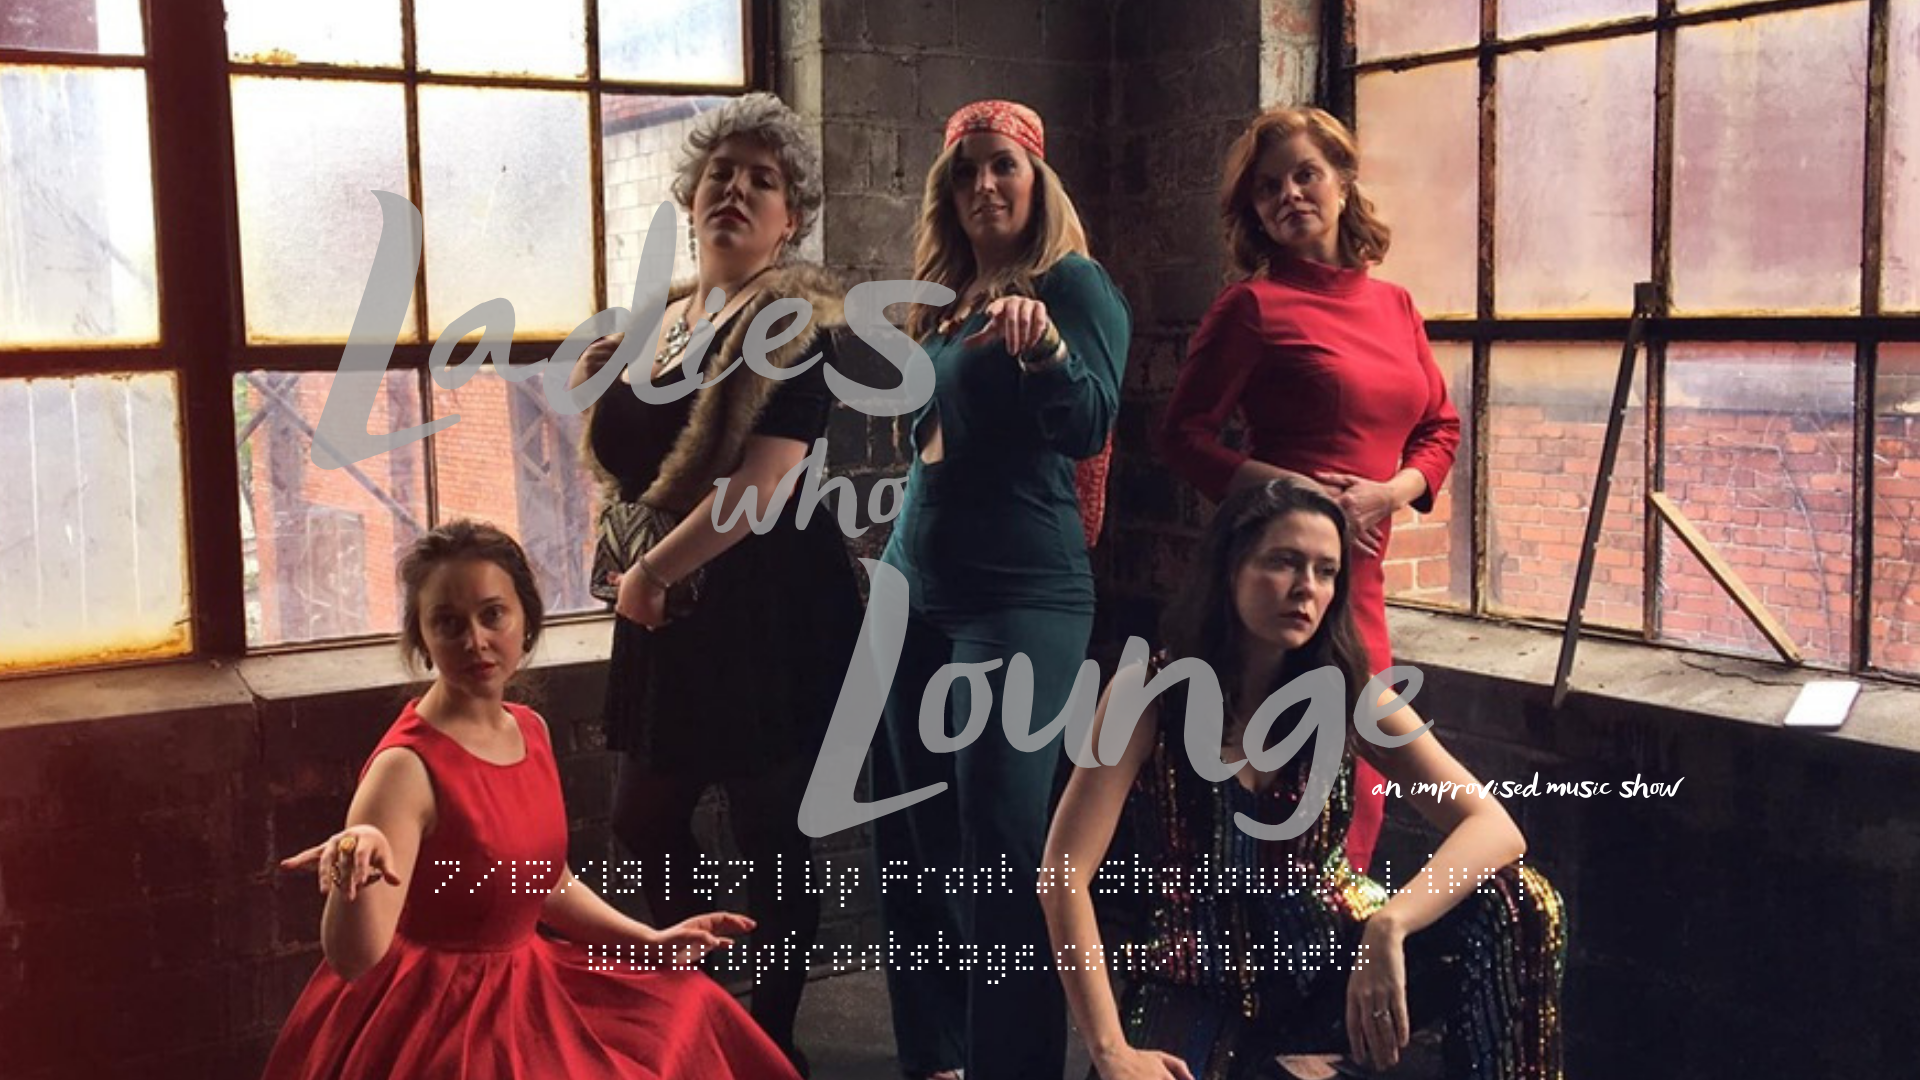 190712 Ladies Who Lounge 1920x1080.png